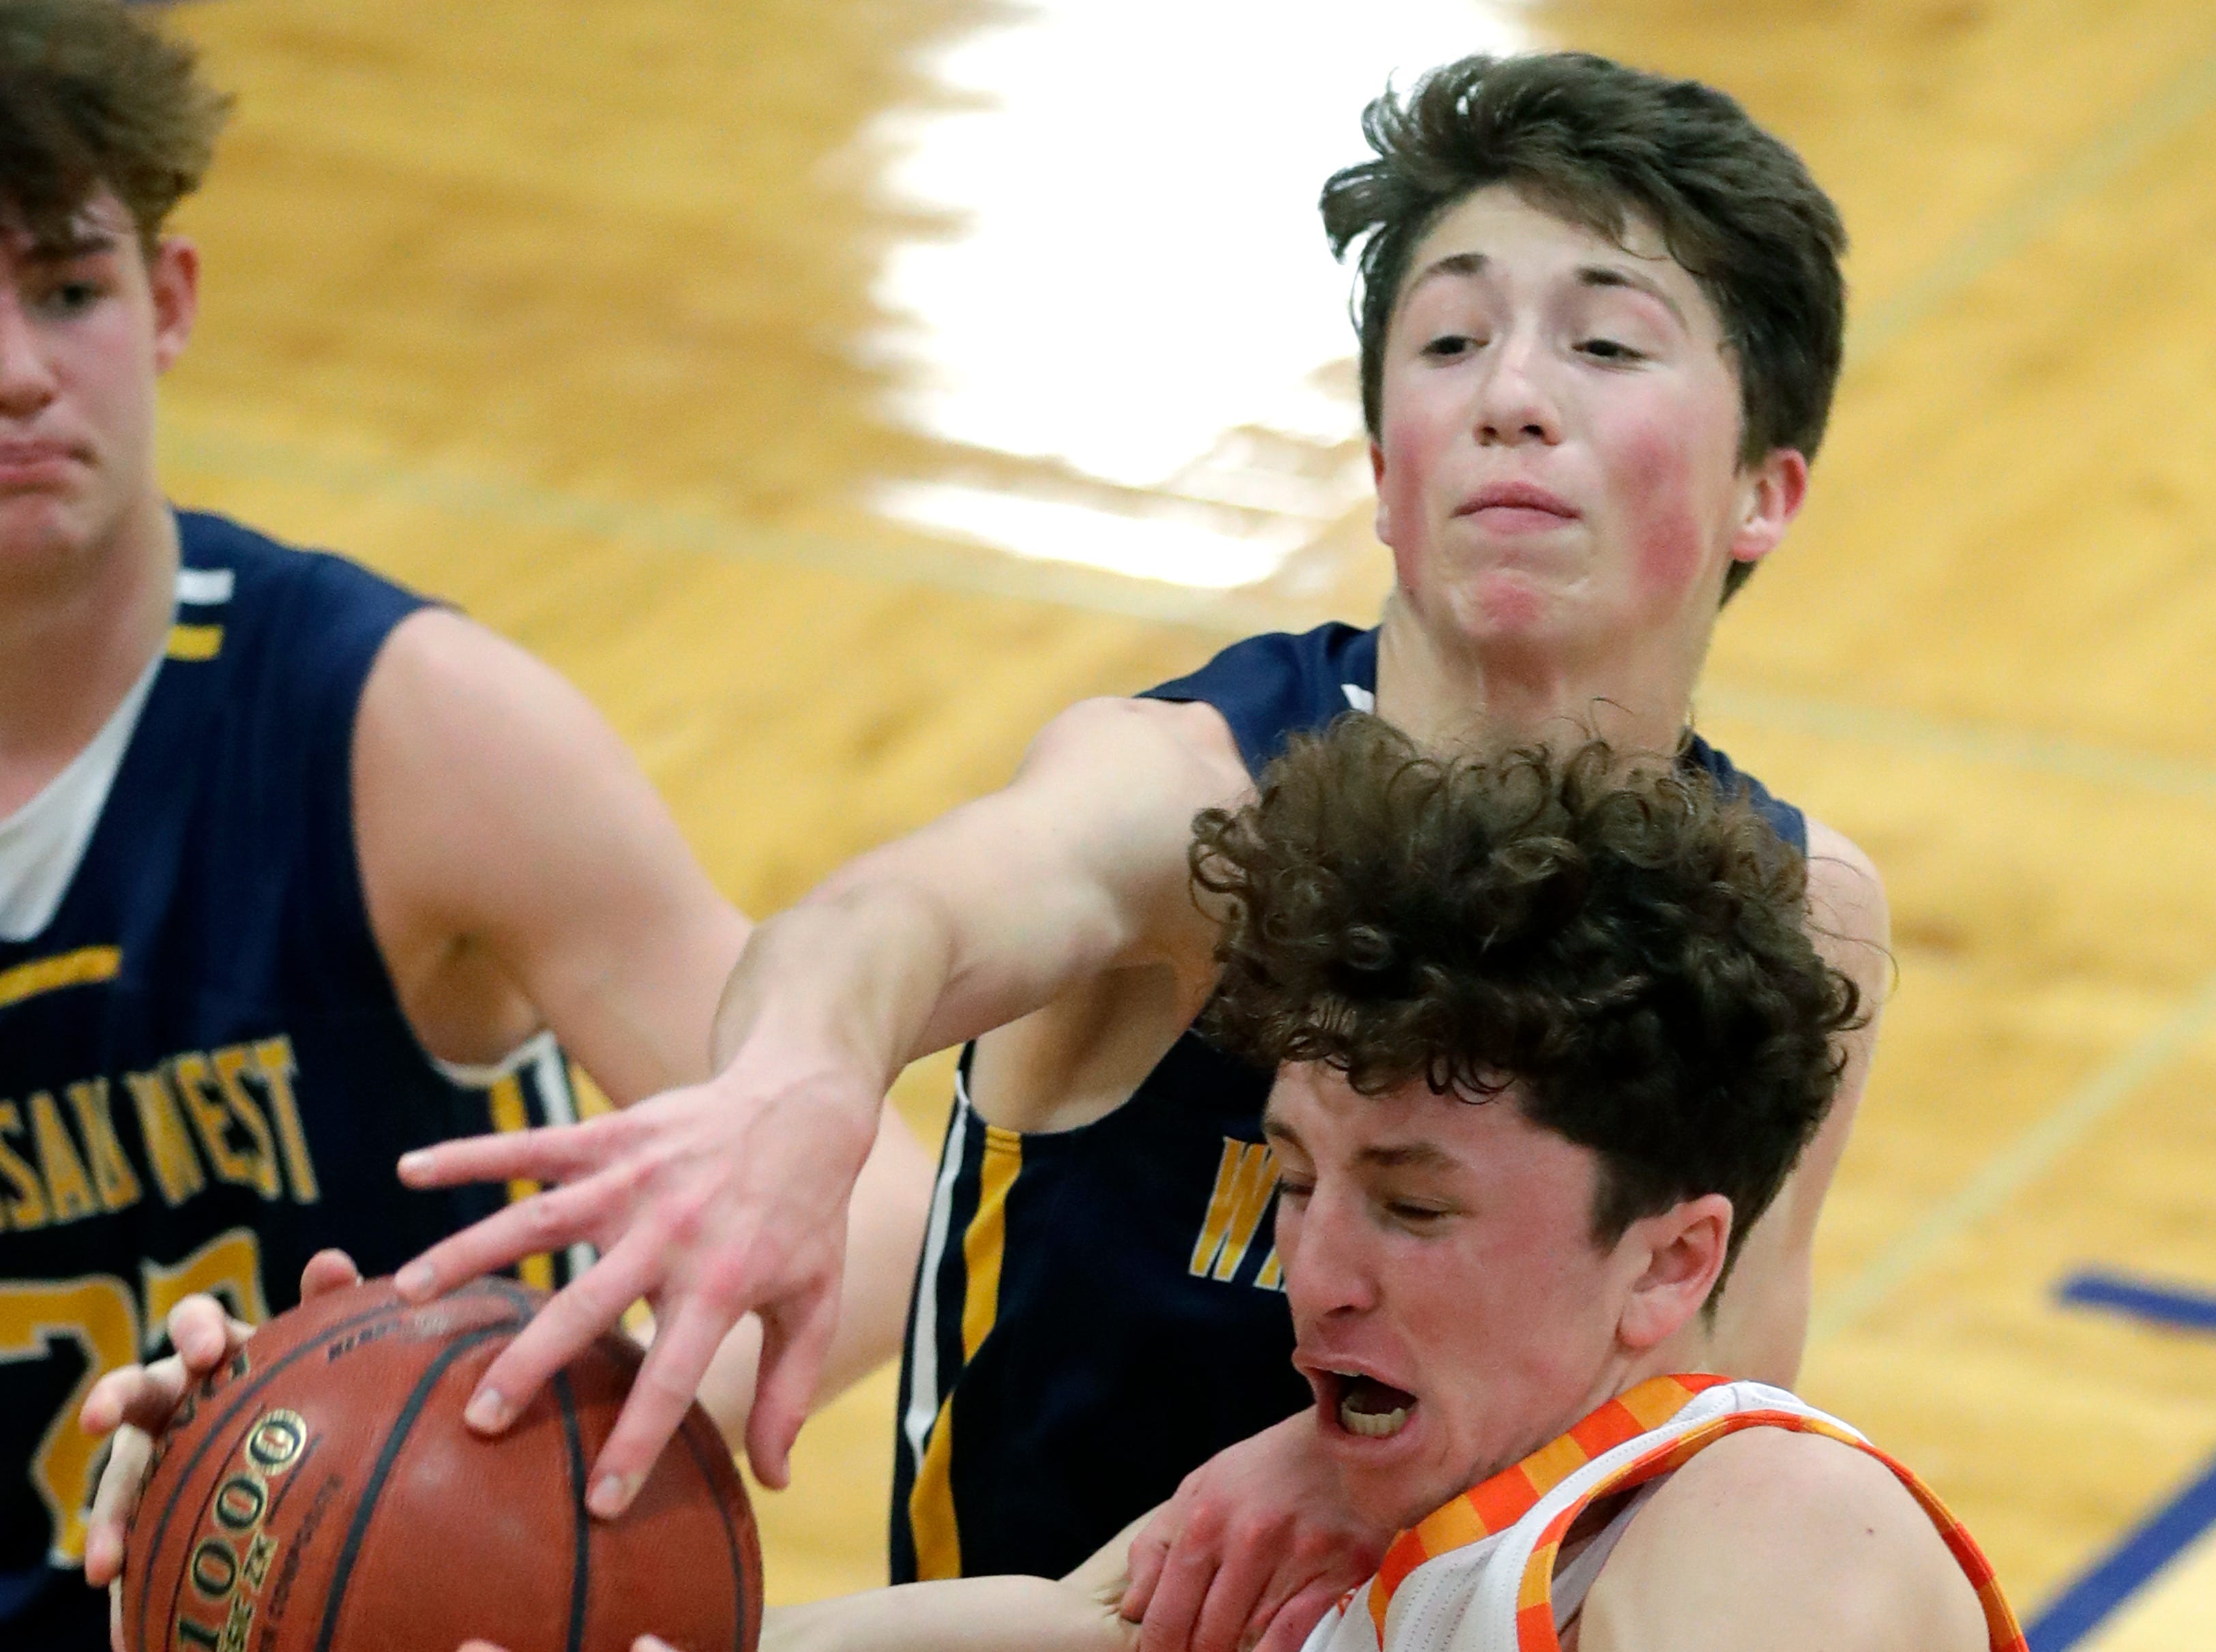 Appleton West  High School's Will Mahoney (21) is fouled as he puts up a shot against Wausau West High School's Tim Deloye (11) during their boys basketball game Friday, December 28, 2018, in Appleton, Wis. Dan Powers/USA TODAY NETWORK-Wisconsin